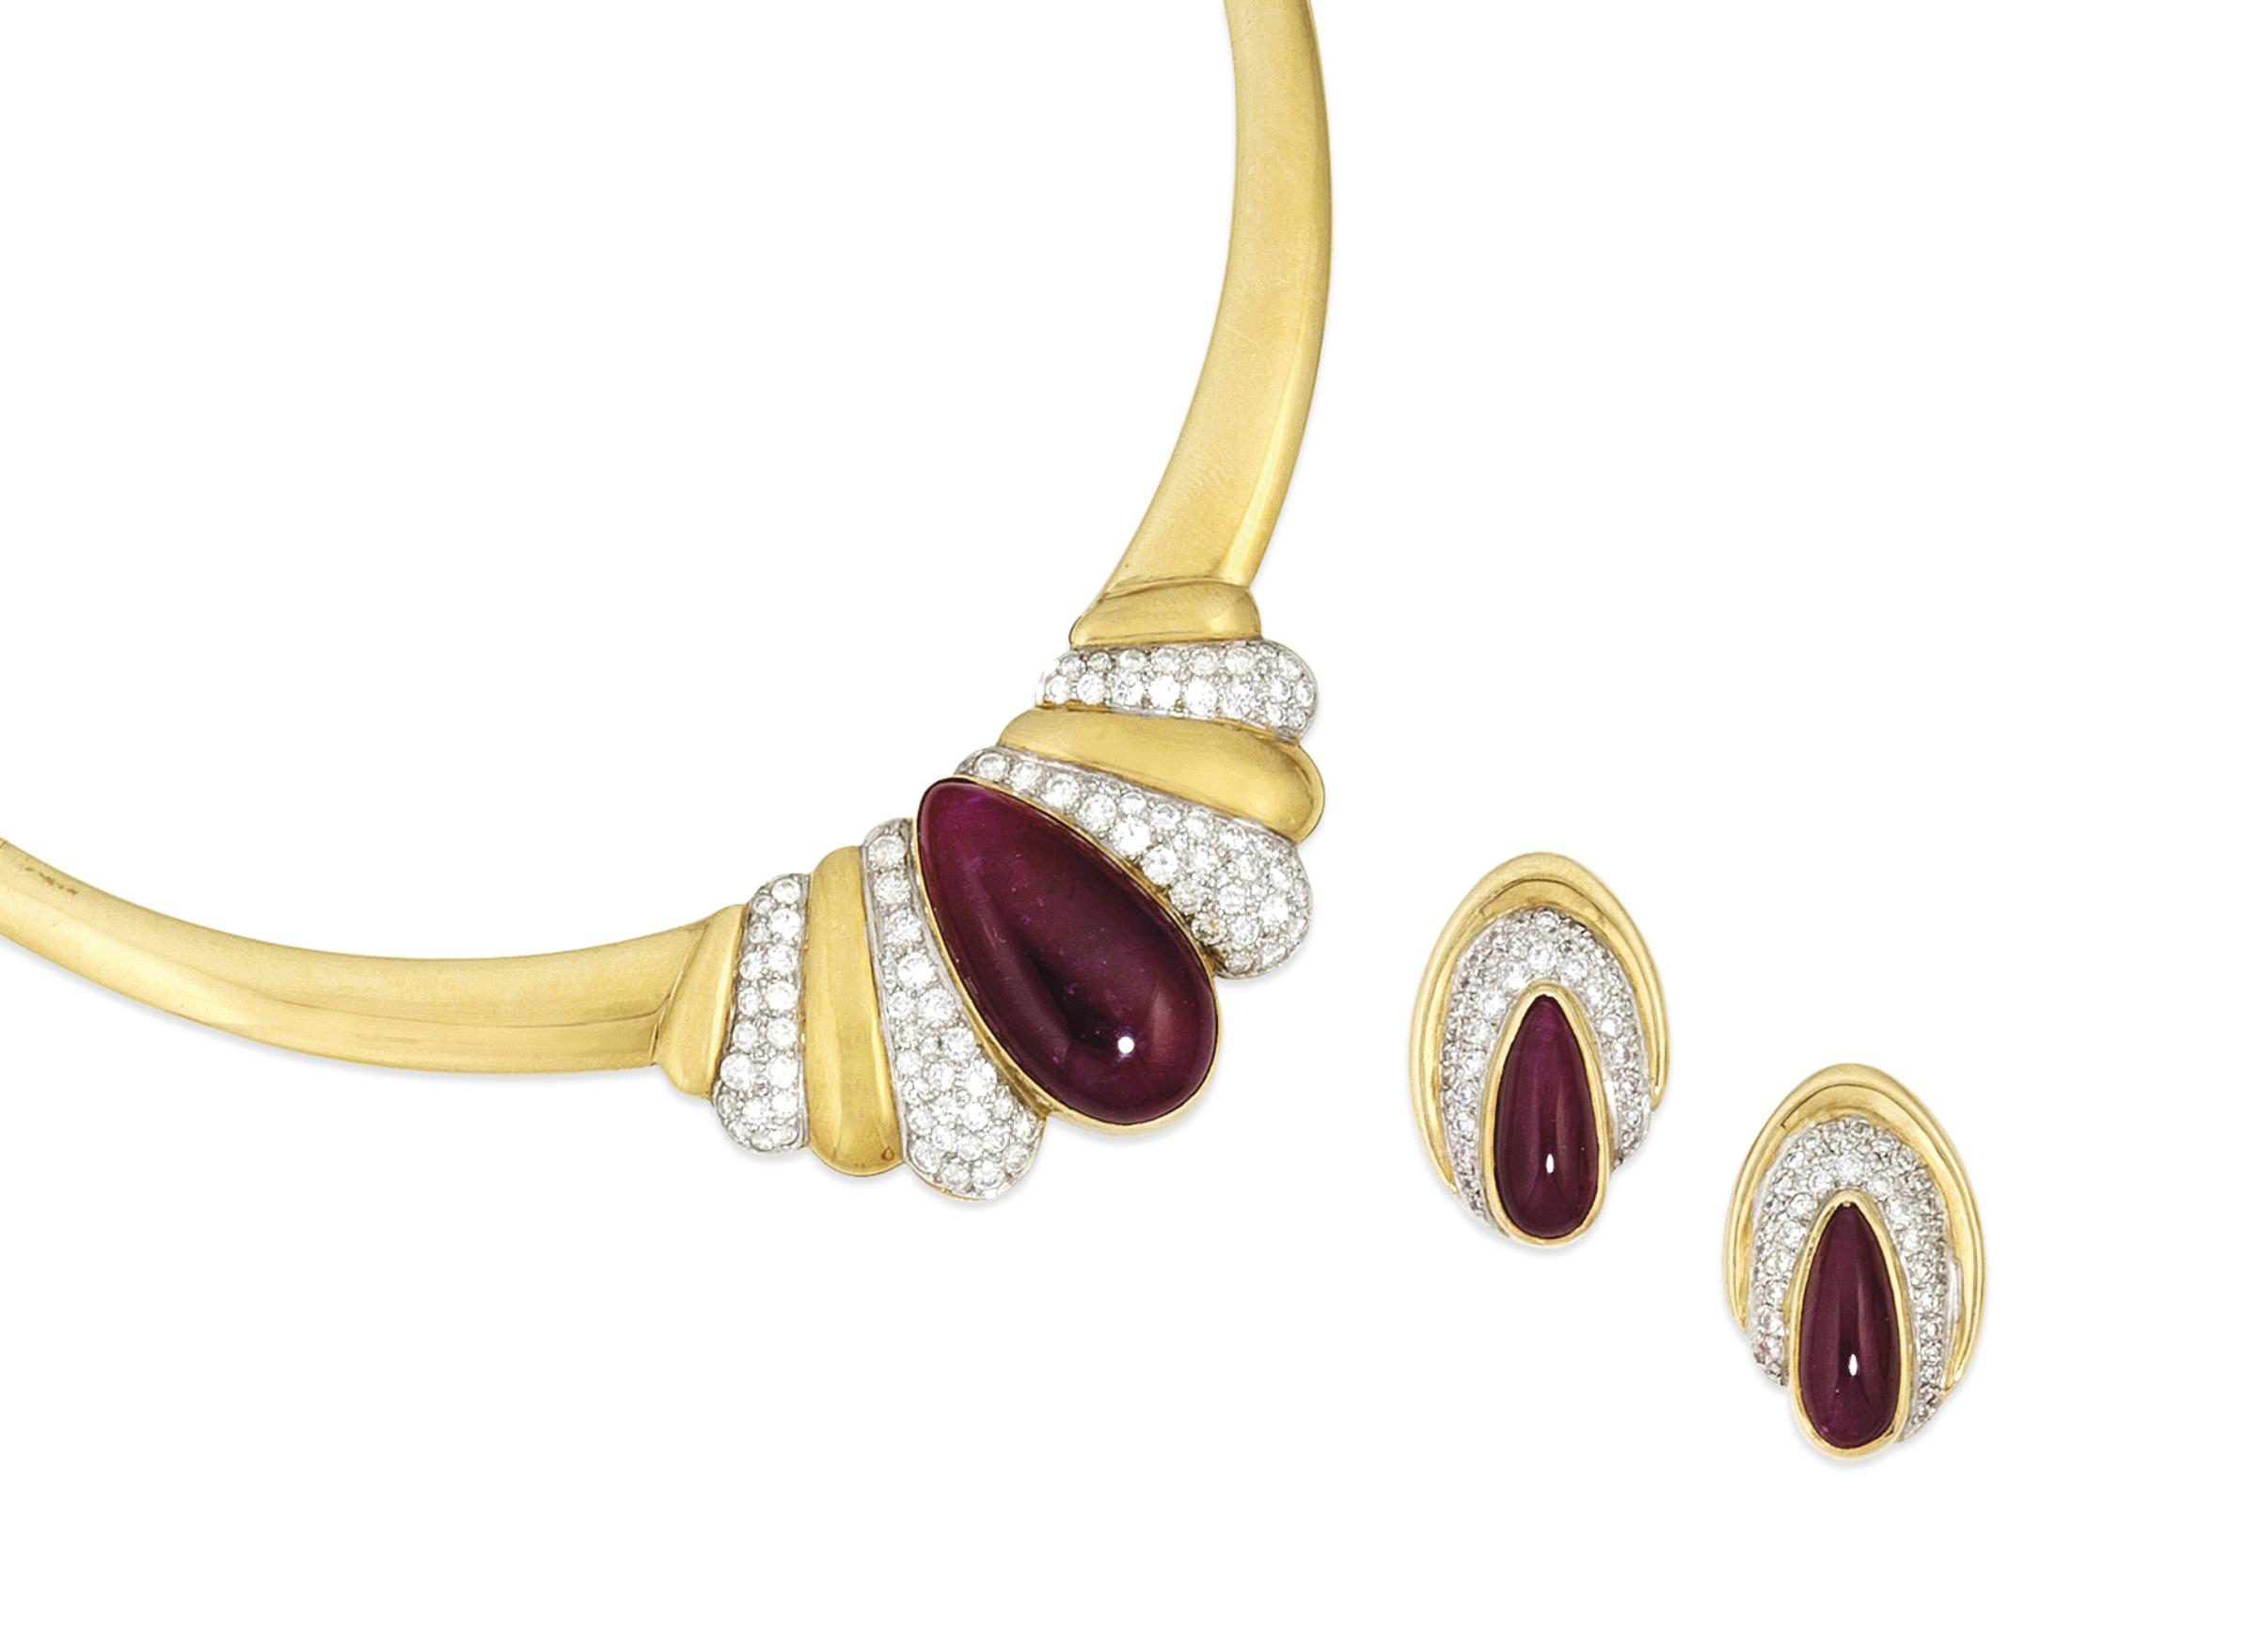 A ruby and diamond necklace and earrings